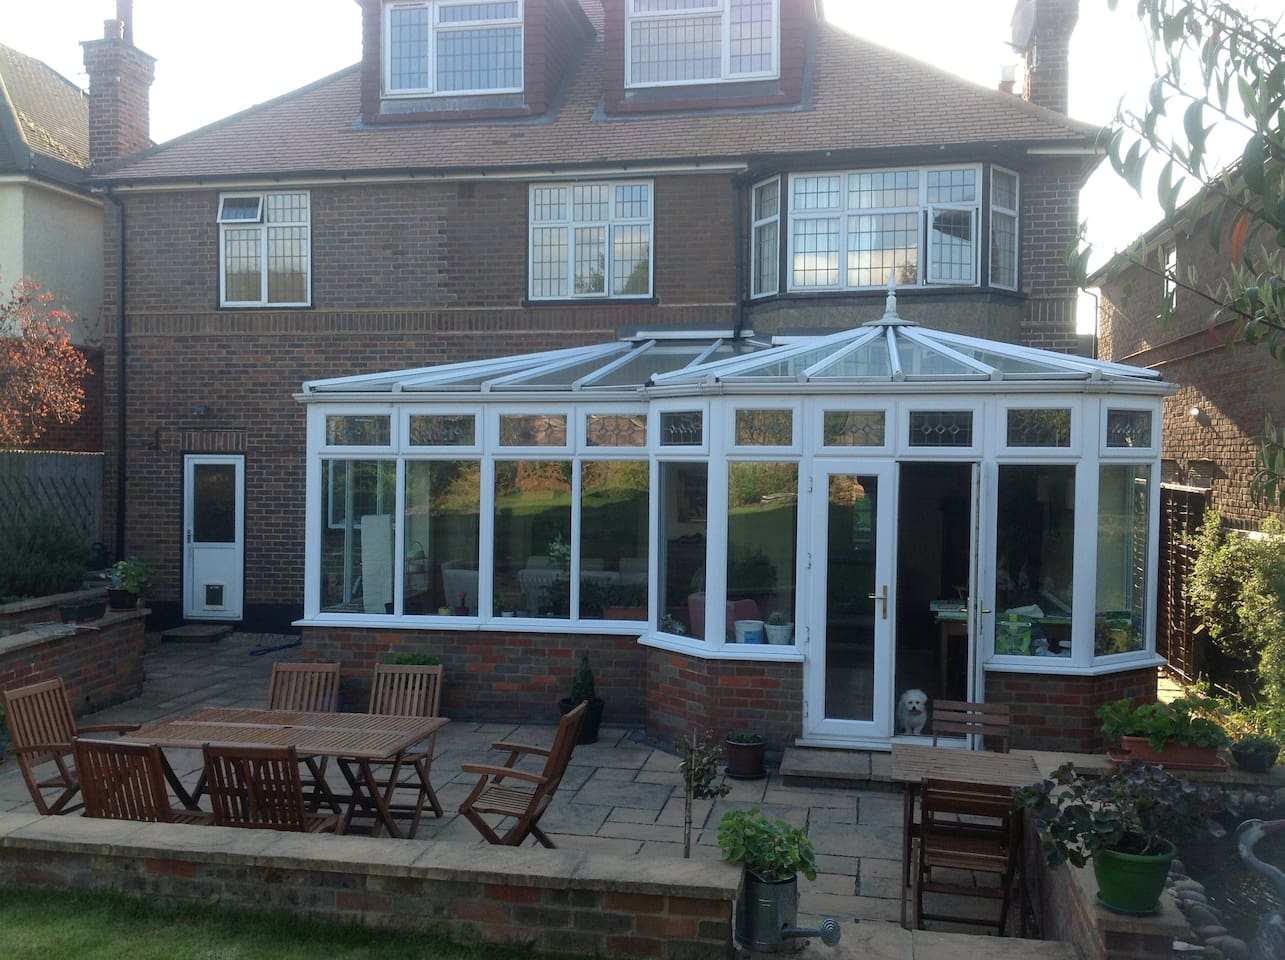 Lovely conservatory to look out onto the garden